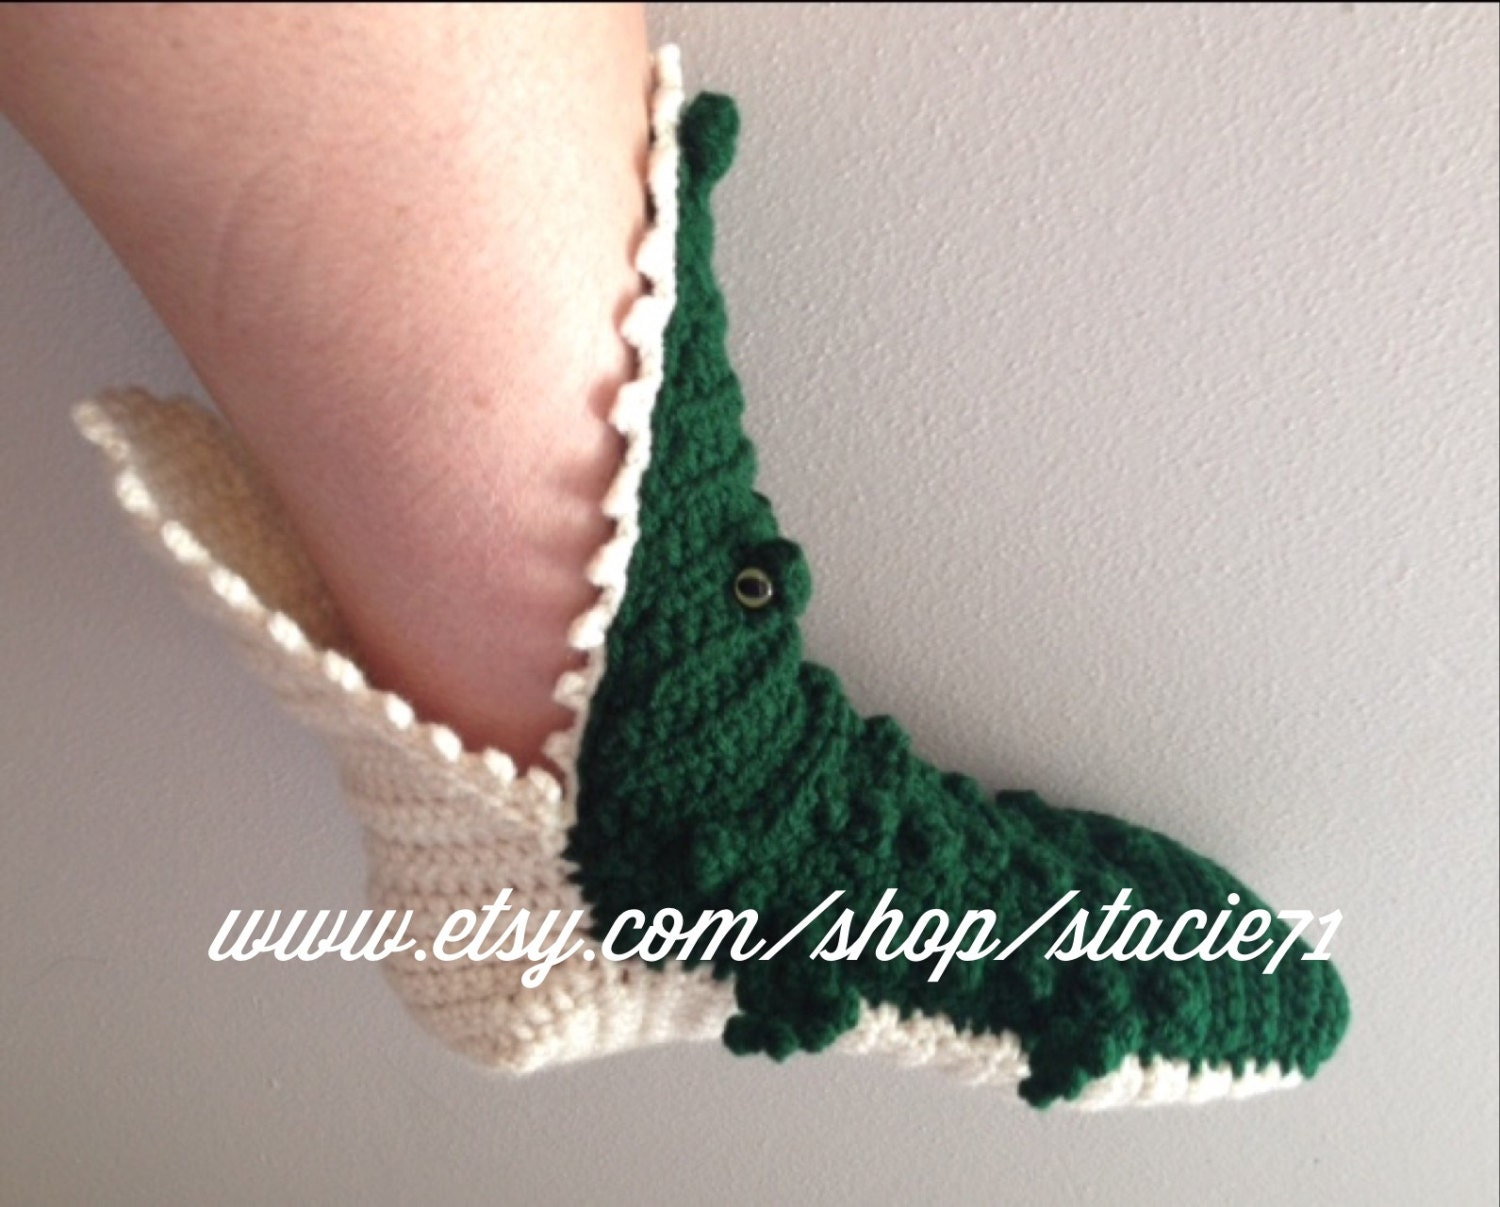 Free crochet pattern for crocodile slippers manet for crocheted alligator slipper socks adult made to order by free crochet pattern bankloansurffo Choice Image